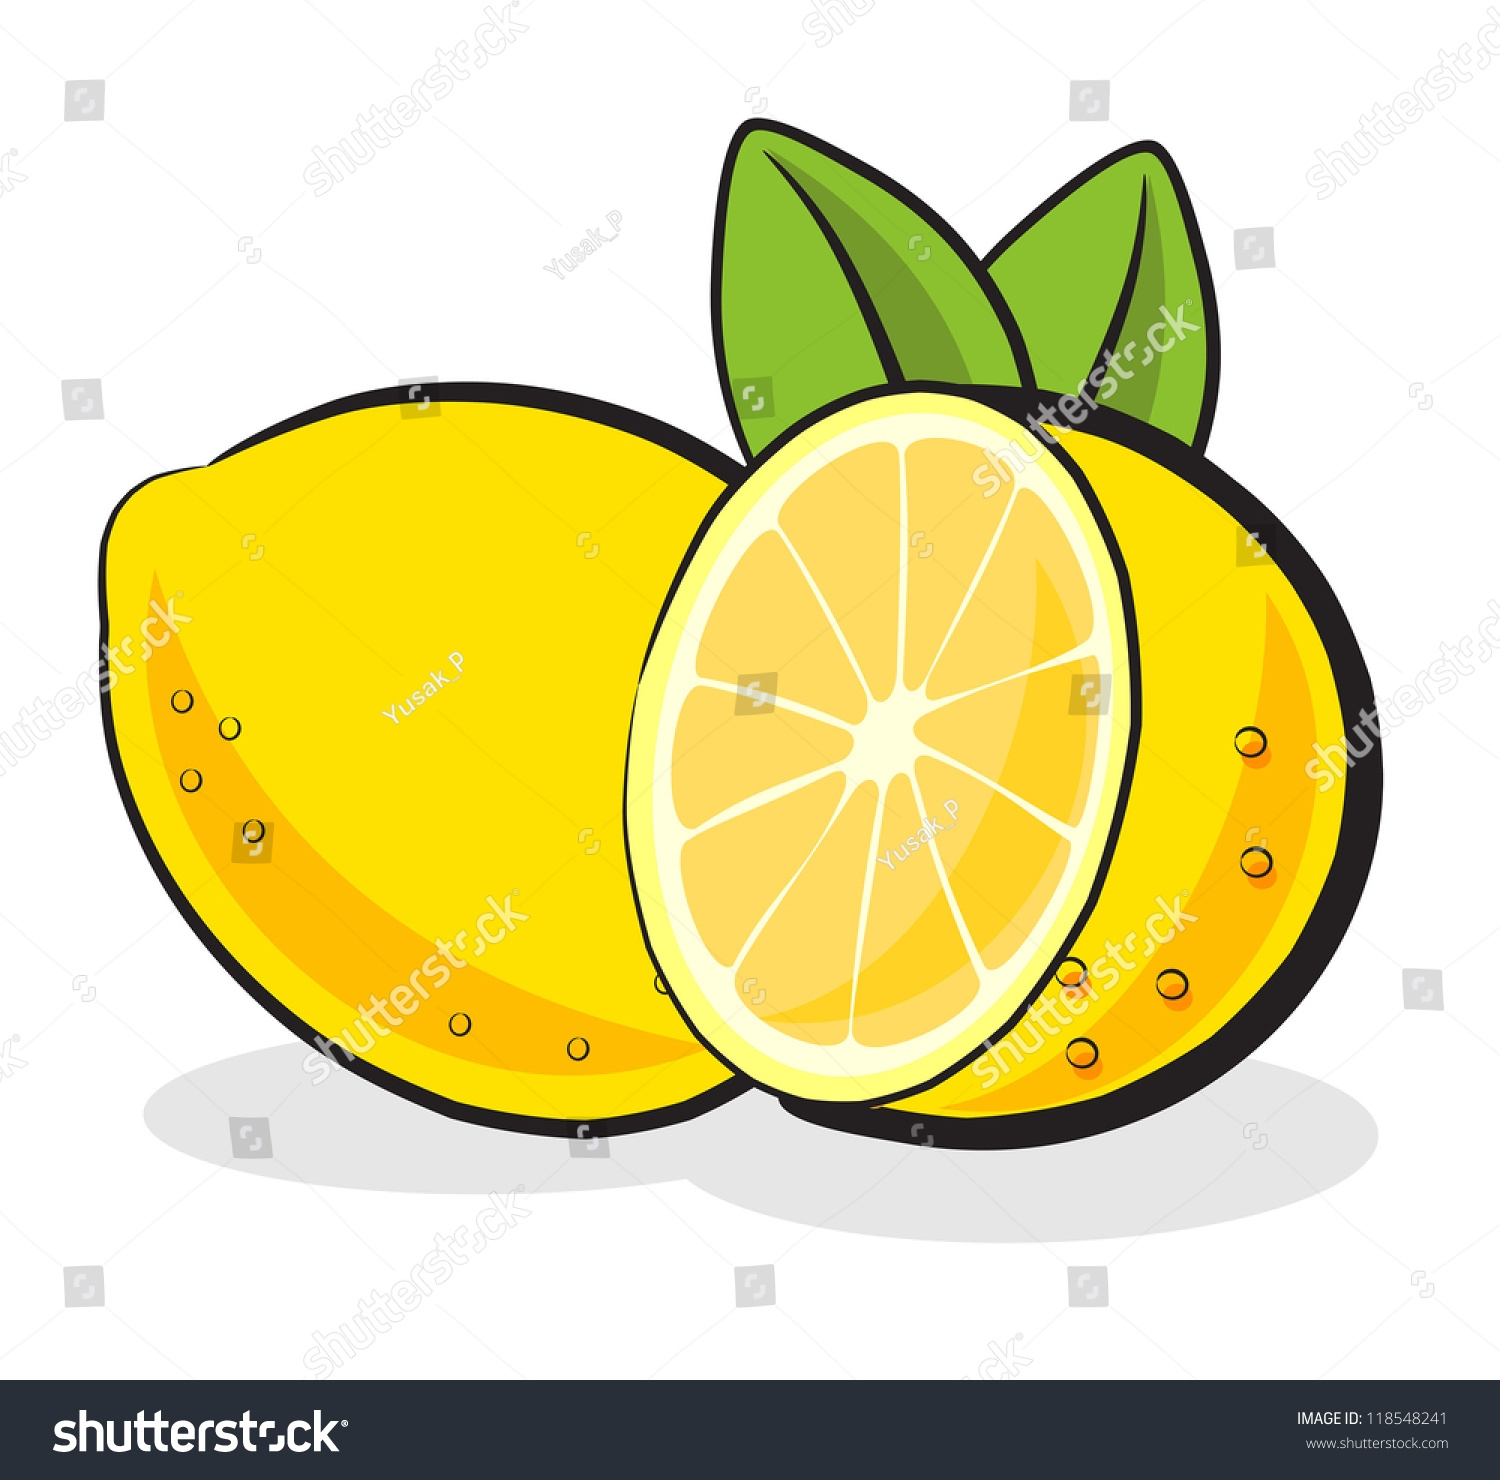 Lemon clipart. Awesome gallery digital collection